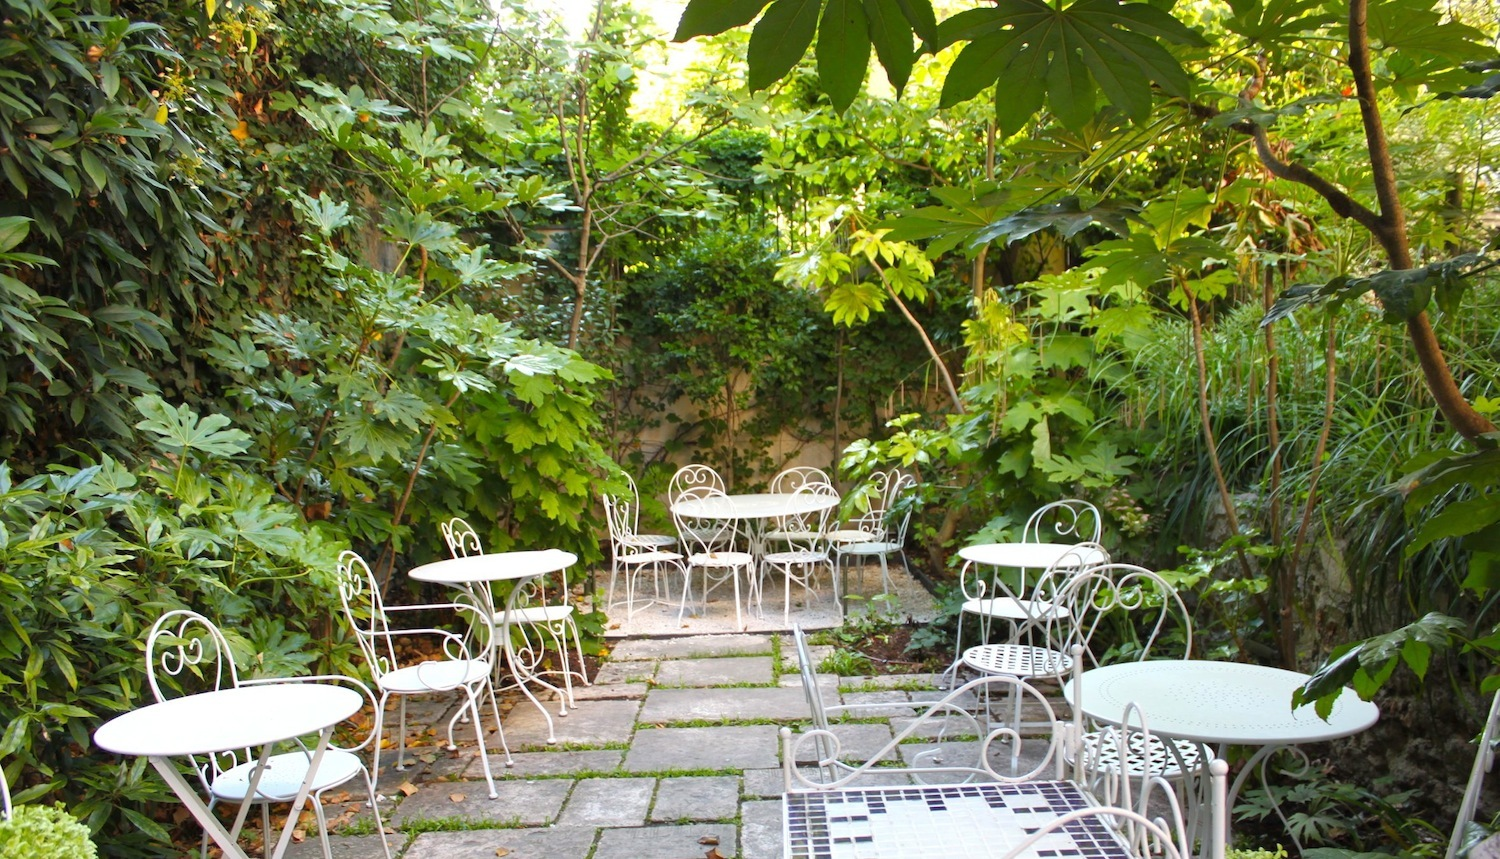 Restaurant Canal Saint Martin Terrasse The Best Bars With Gardens In Paris | Music & Nightlife